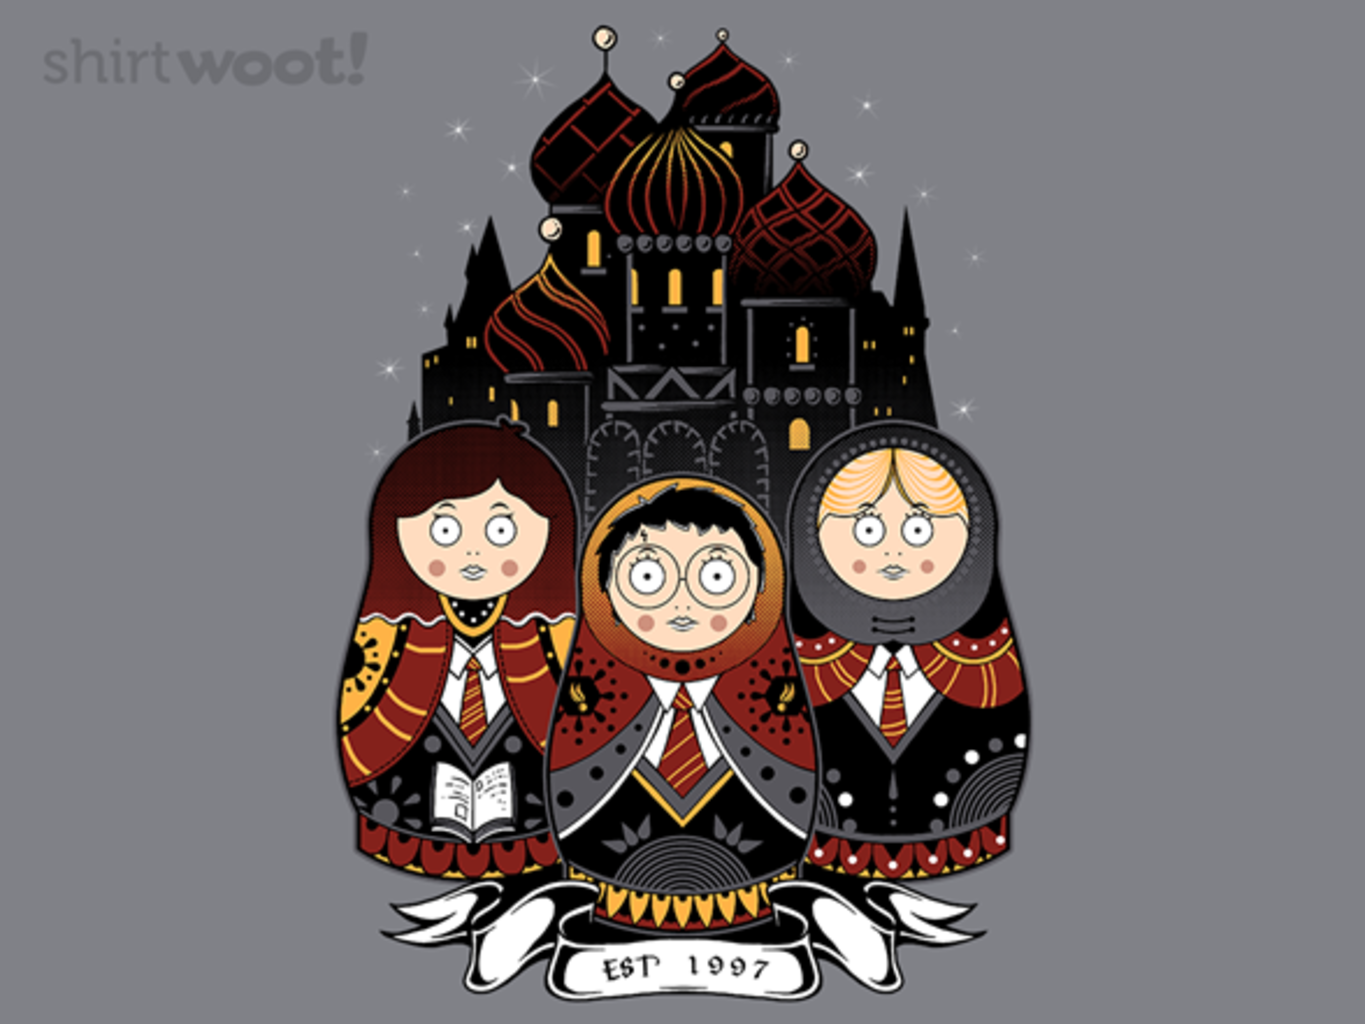 Woot!: Kremlin School of Wizardry